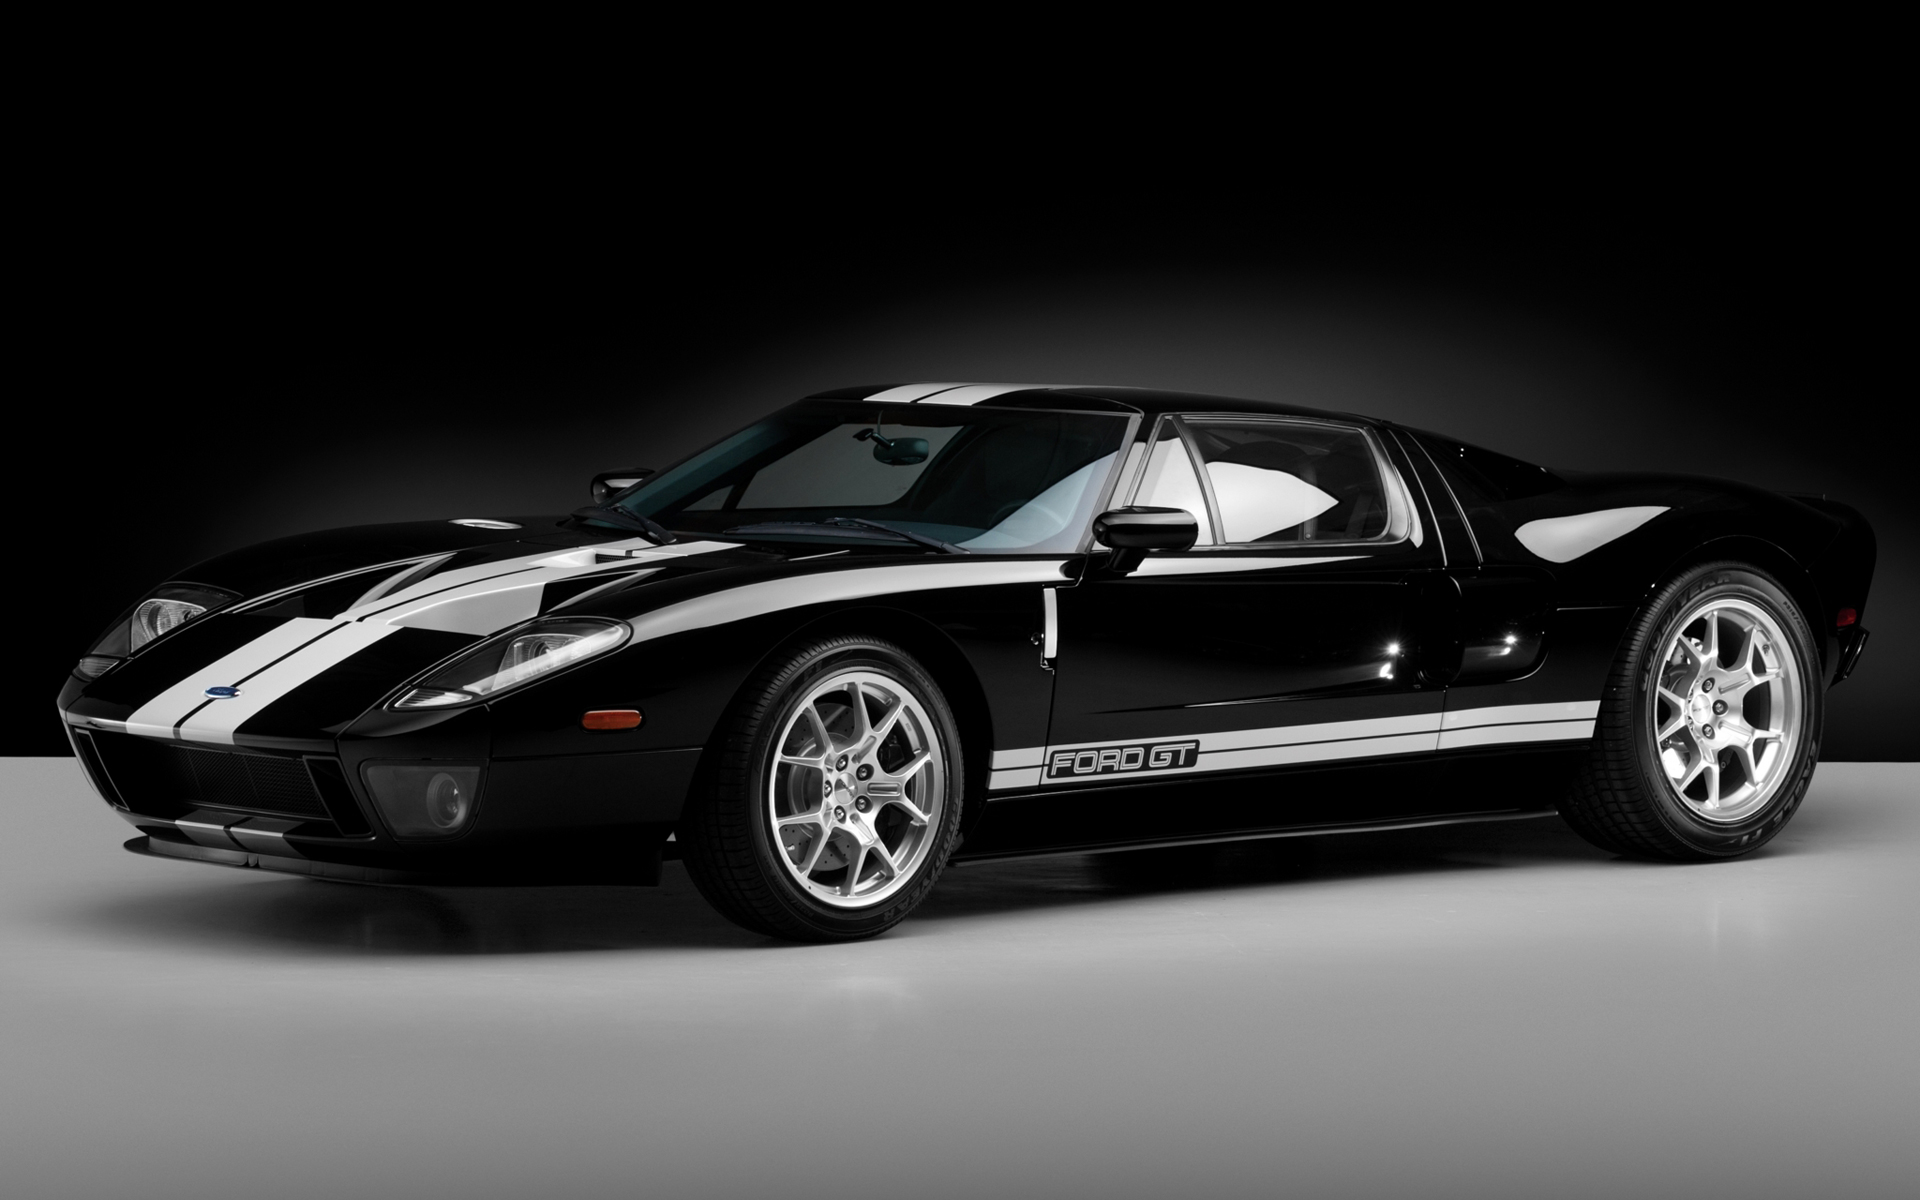 Black Ford Gt HD Wallpaper 1920x1200